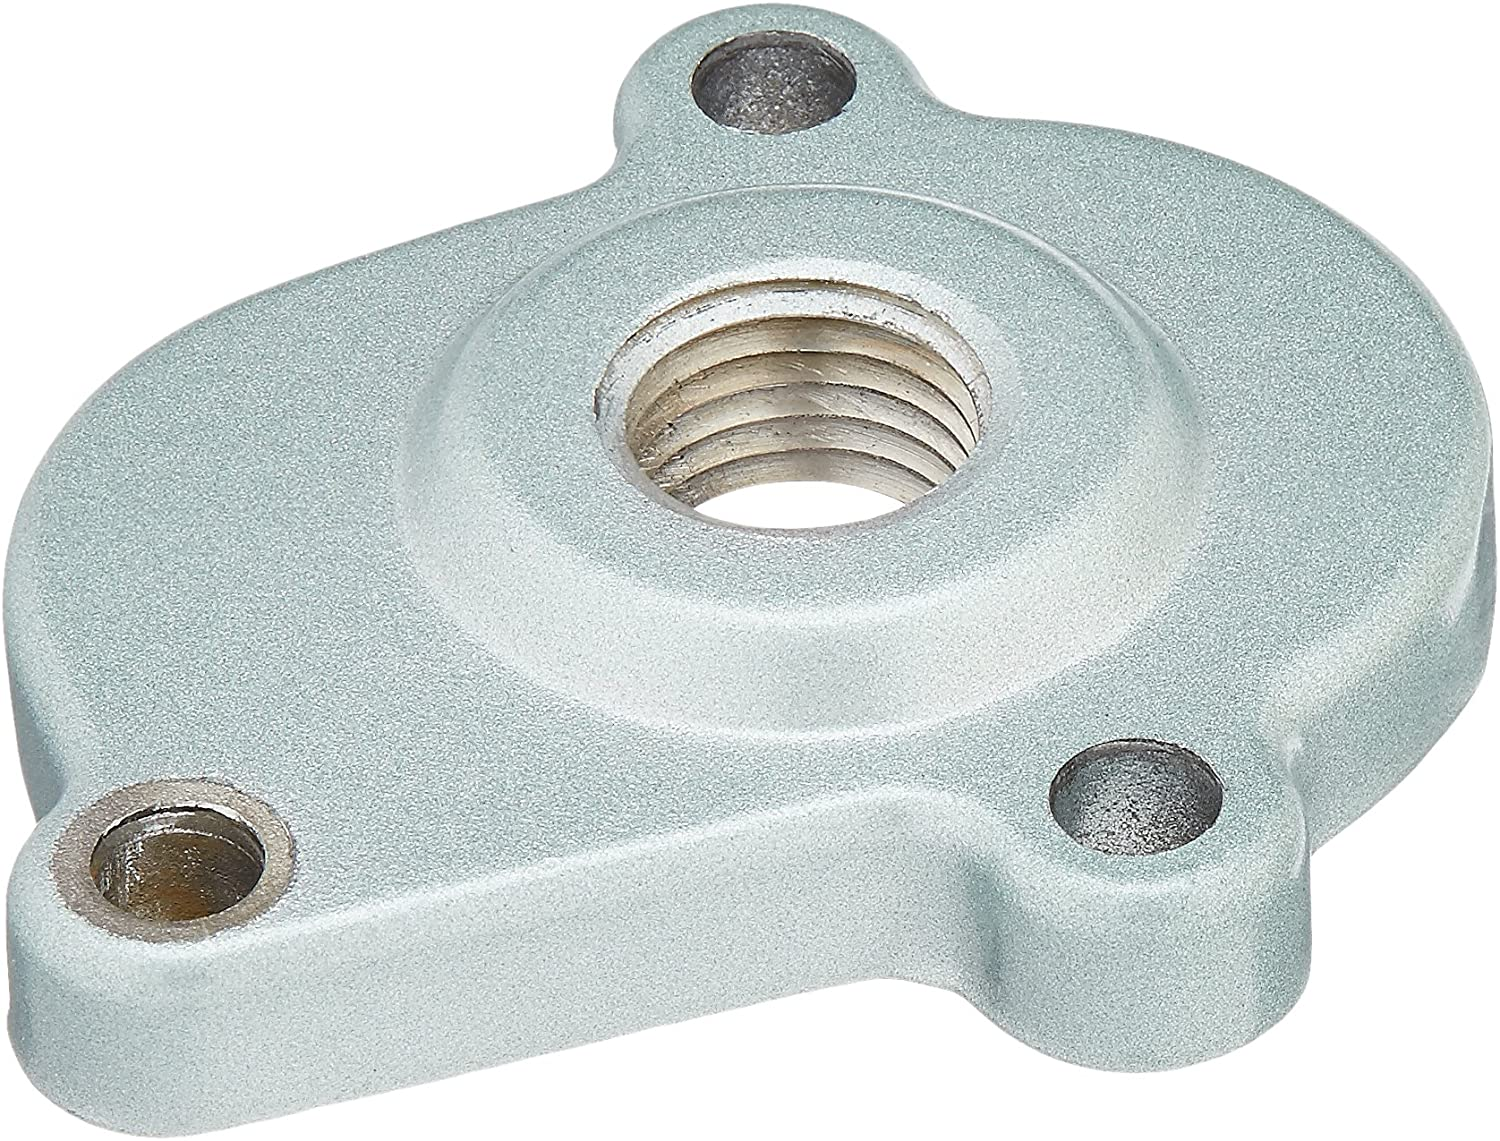 Hitachi 885795 Replacement Part for Power Tool Cap